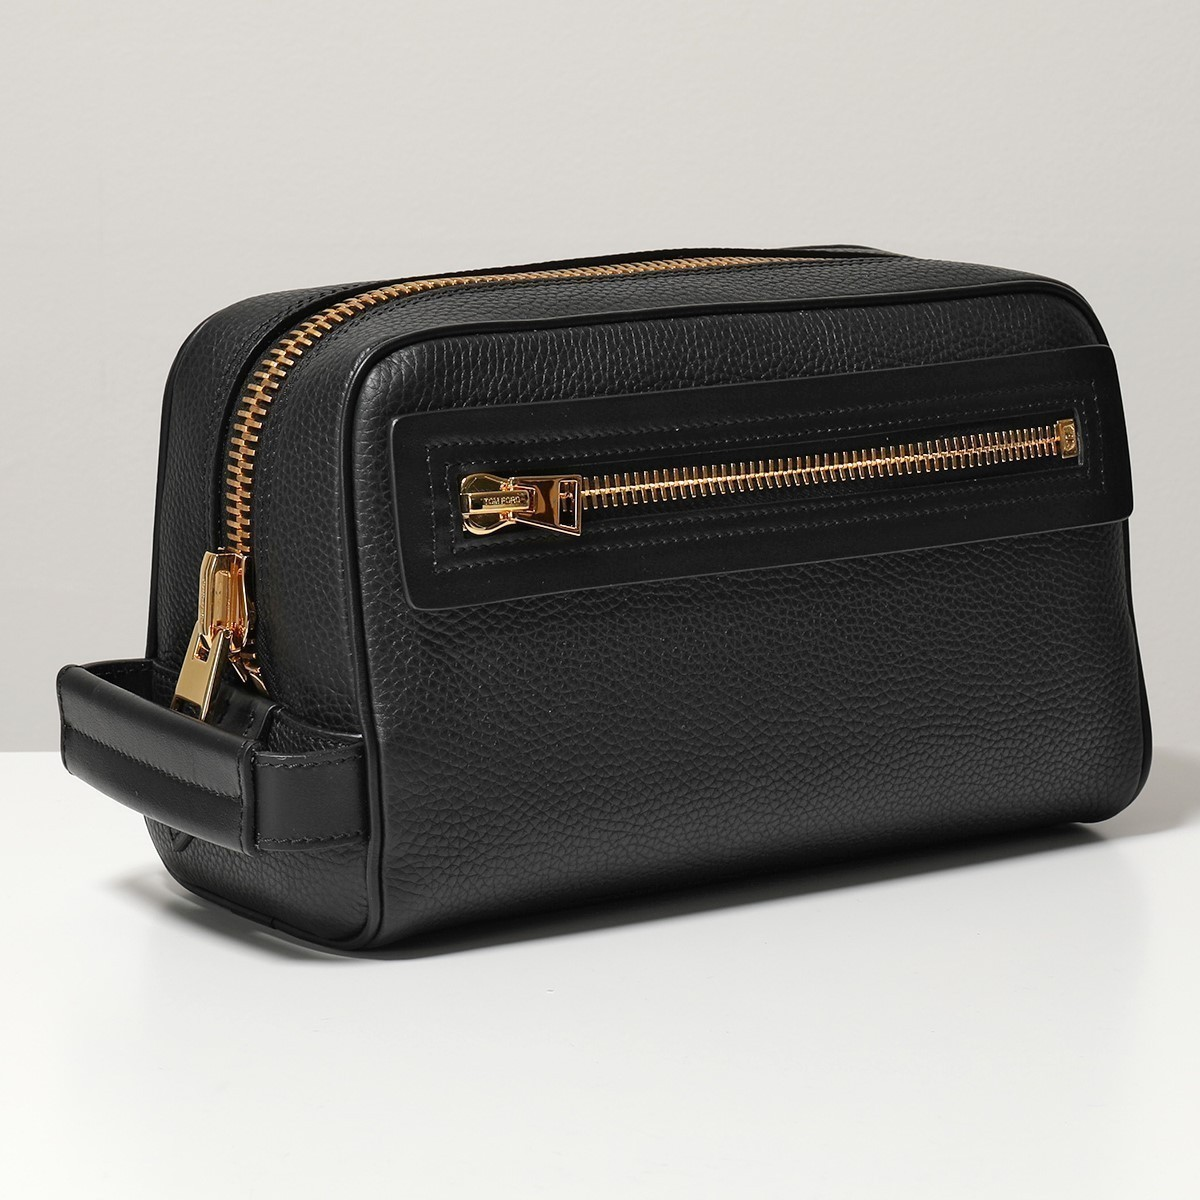 TOM FORD セカンドバッグ Y0301T LCL037 (TOM FORD/クラッチバッグ) Y0301T LCL037